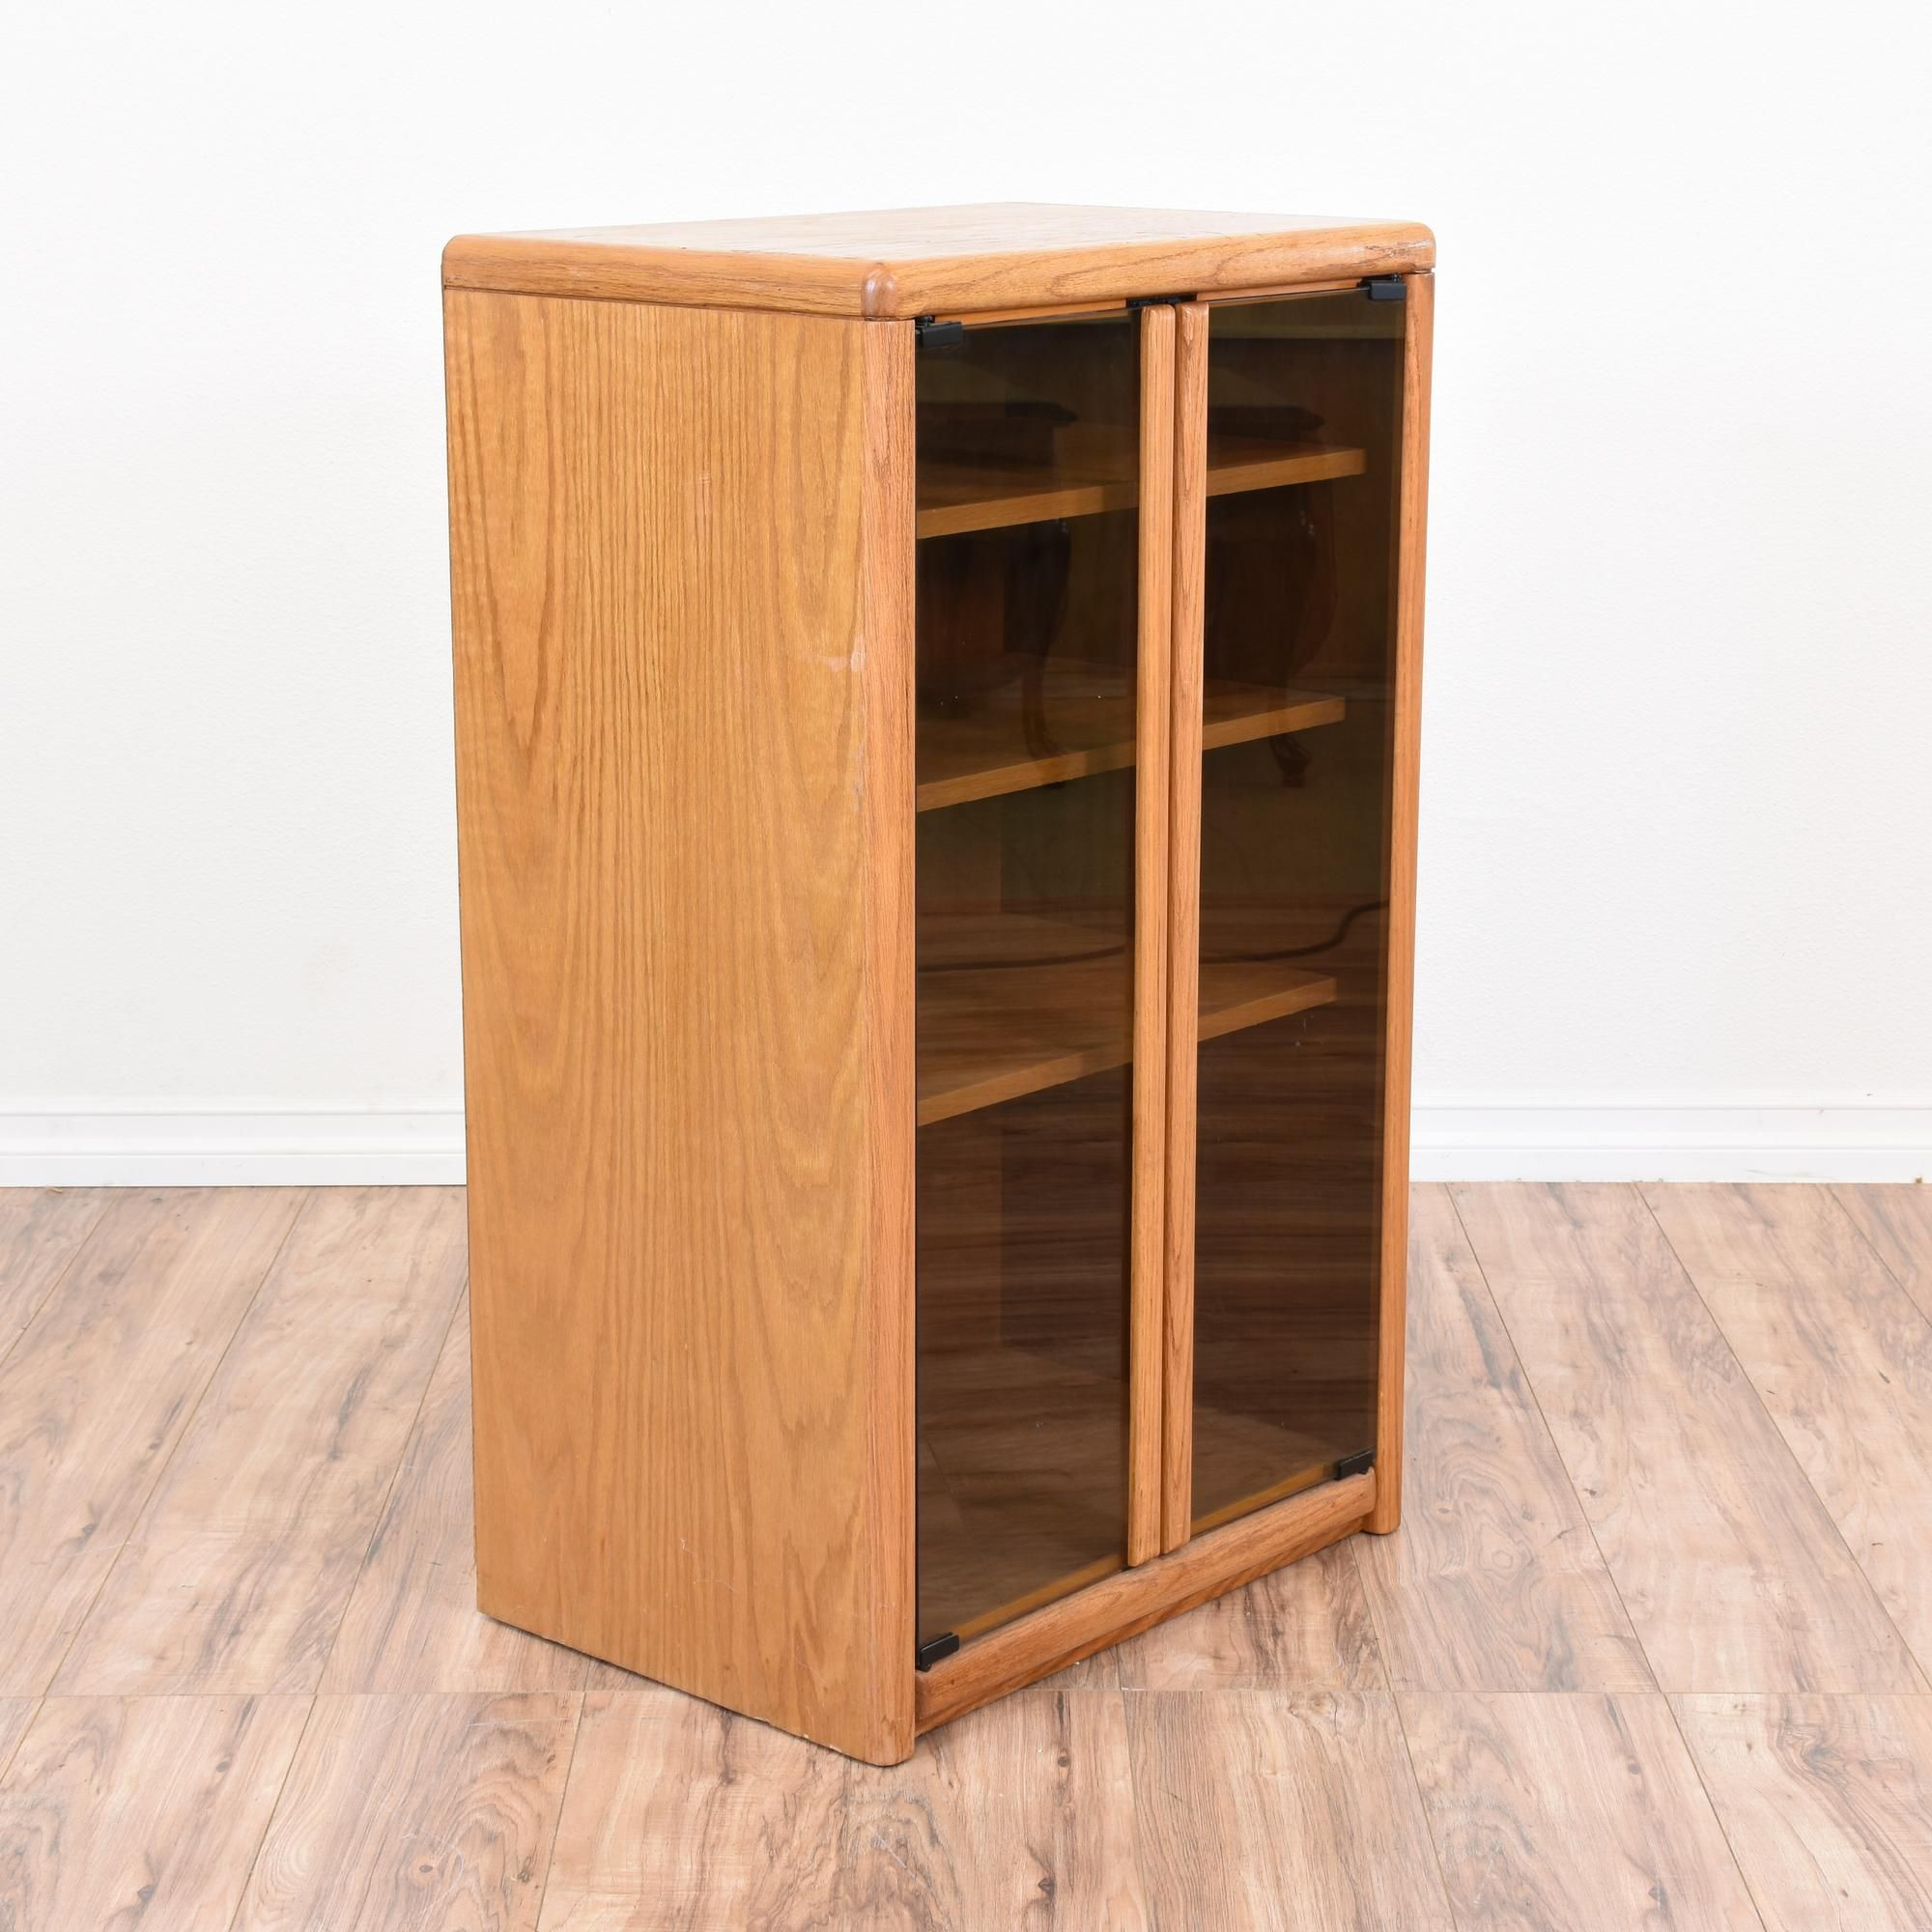 This Media Cabinet Is Featured In A Solid Wood With A Light Honey